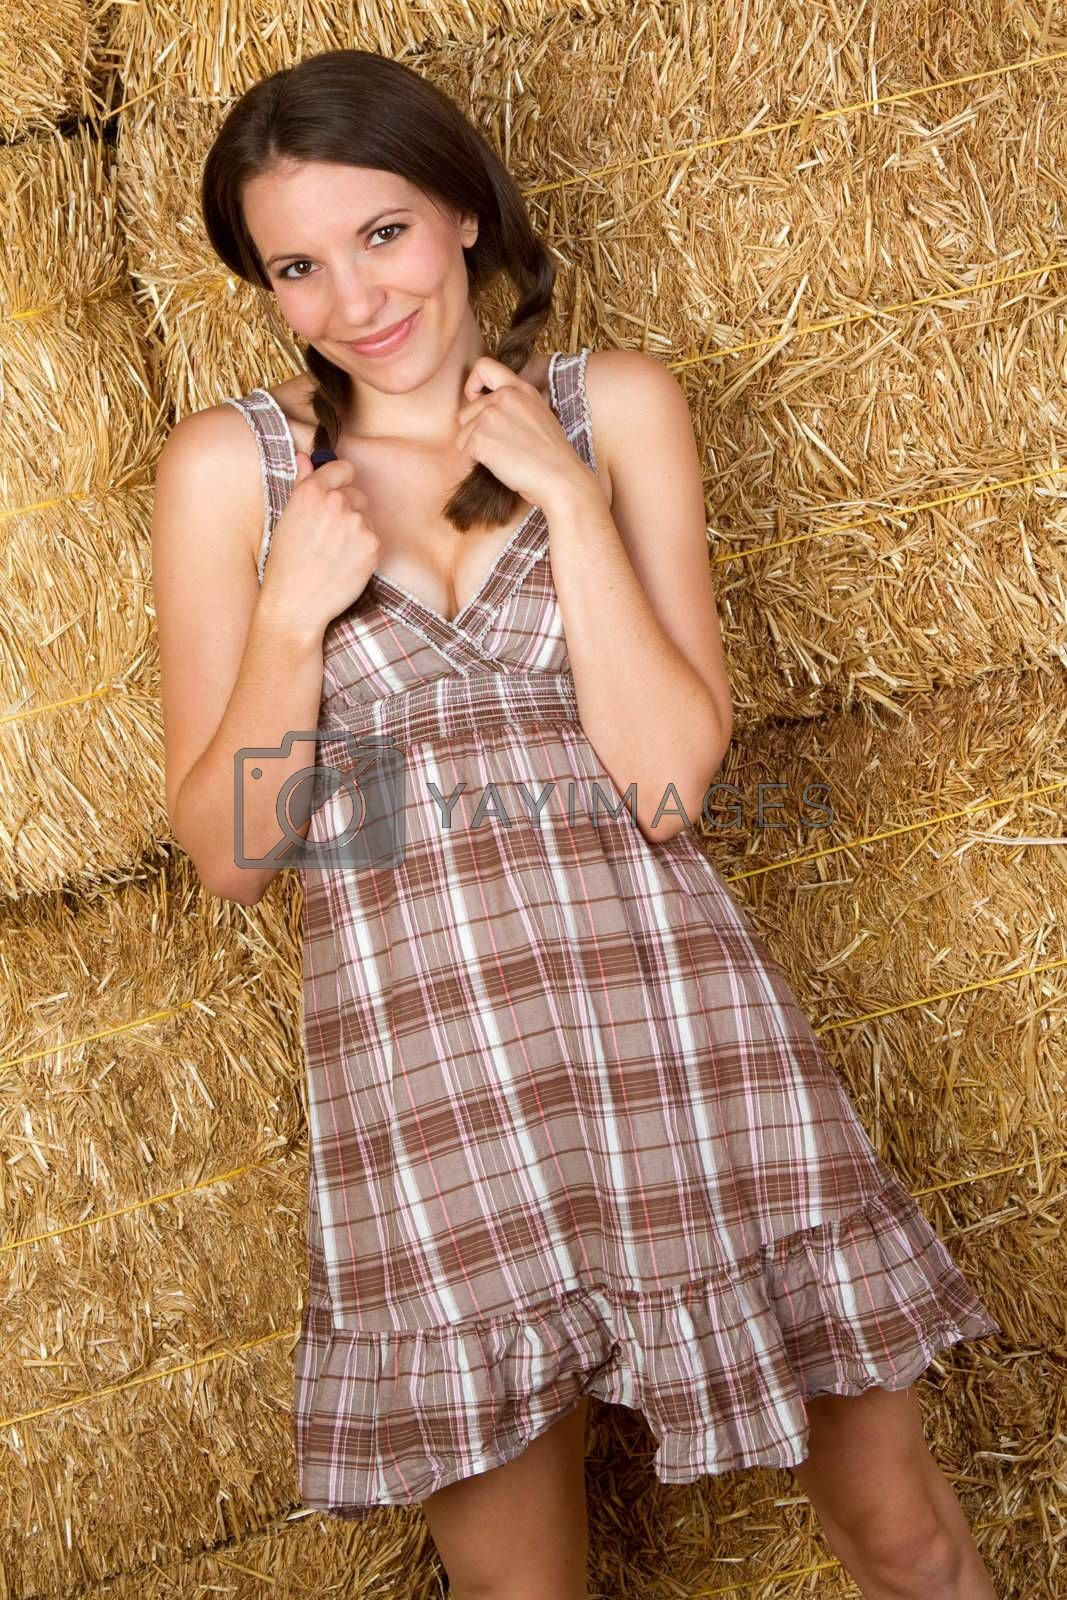 Beautiful smiling pretty country girl